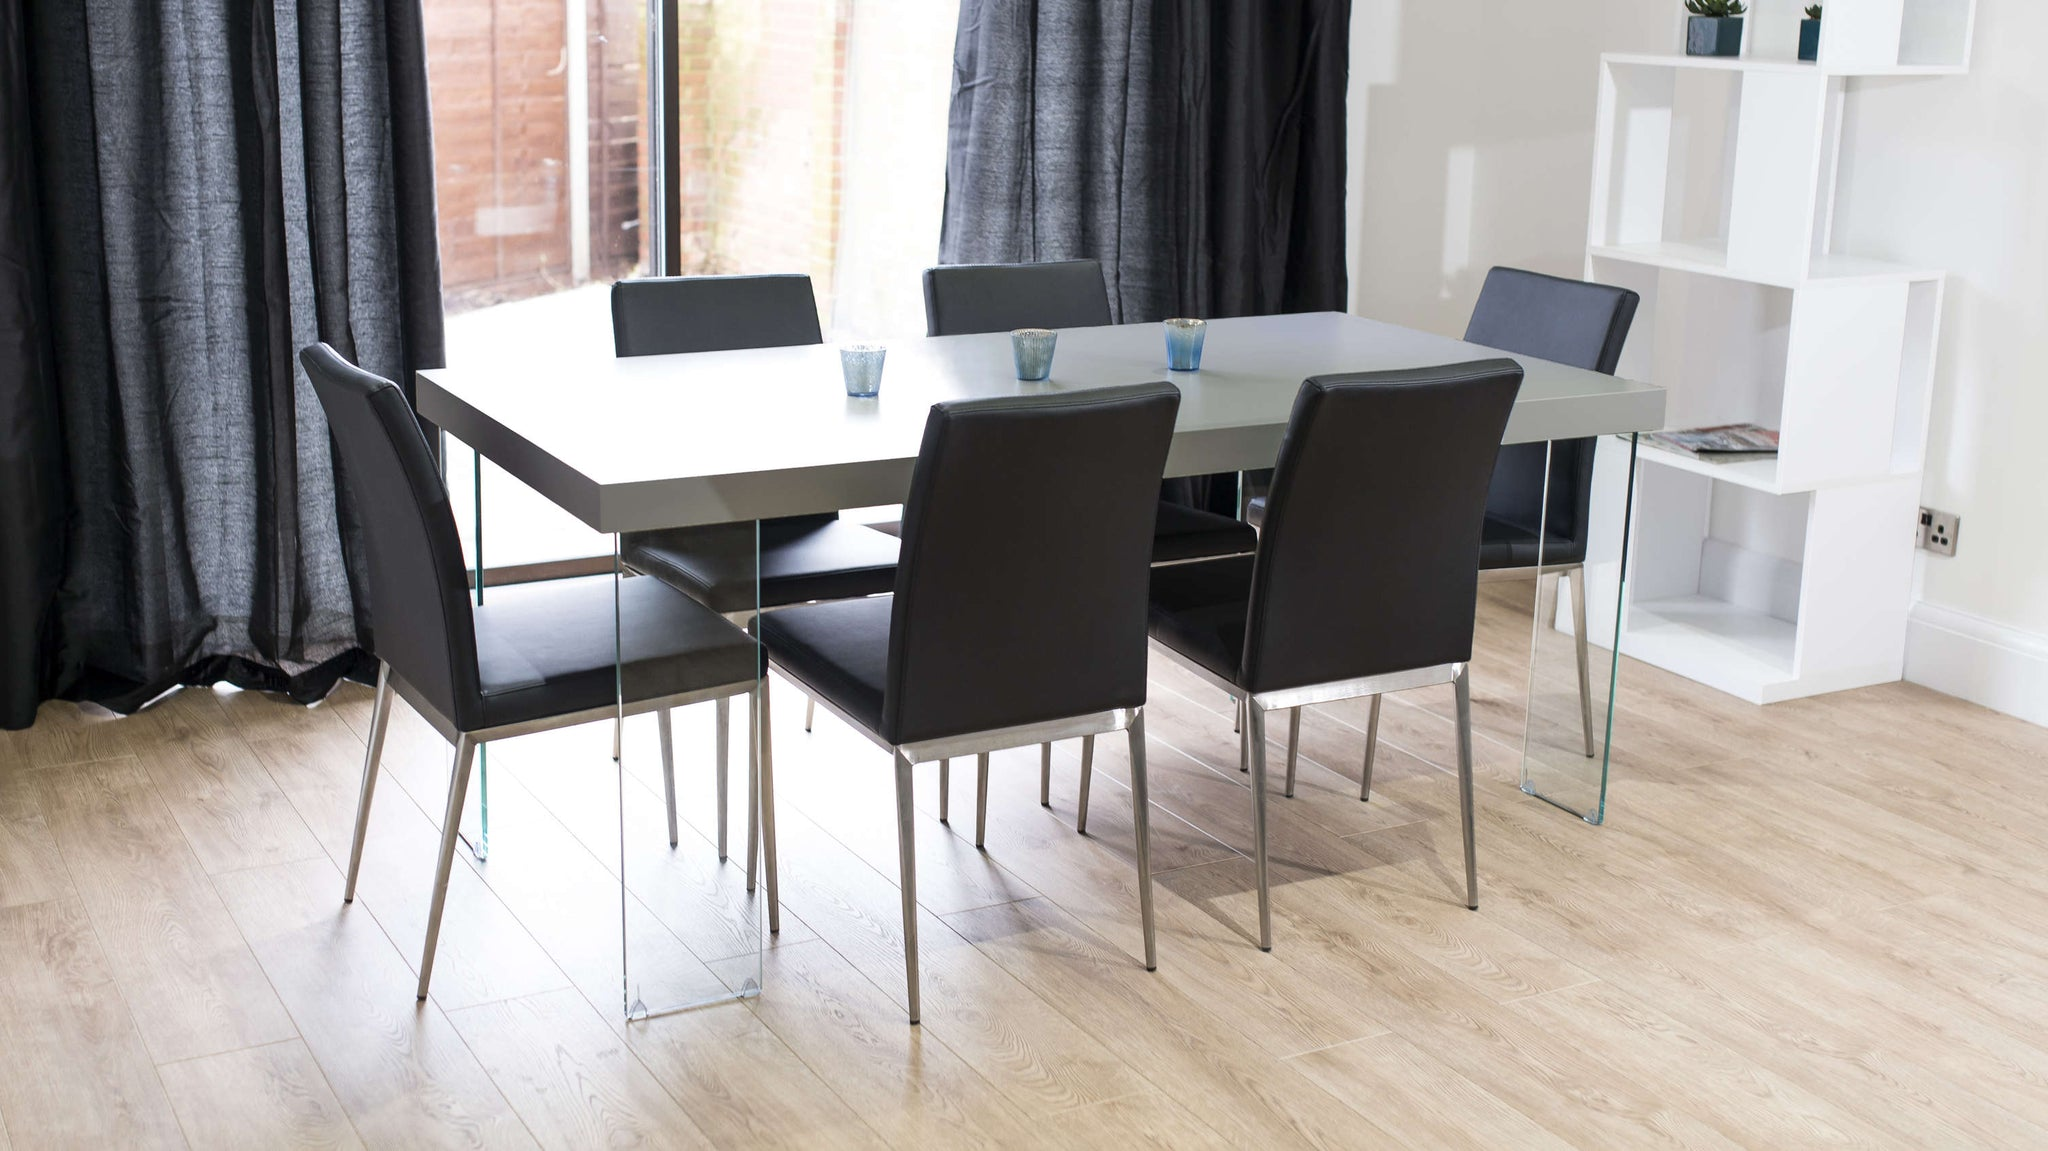 4-6 Seater Glass Based Dining Table with Black Dining Chairs